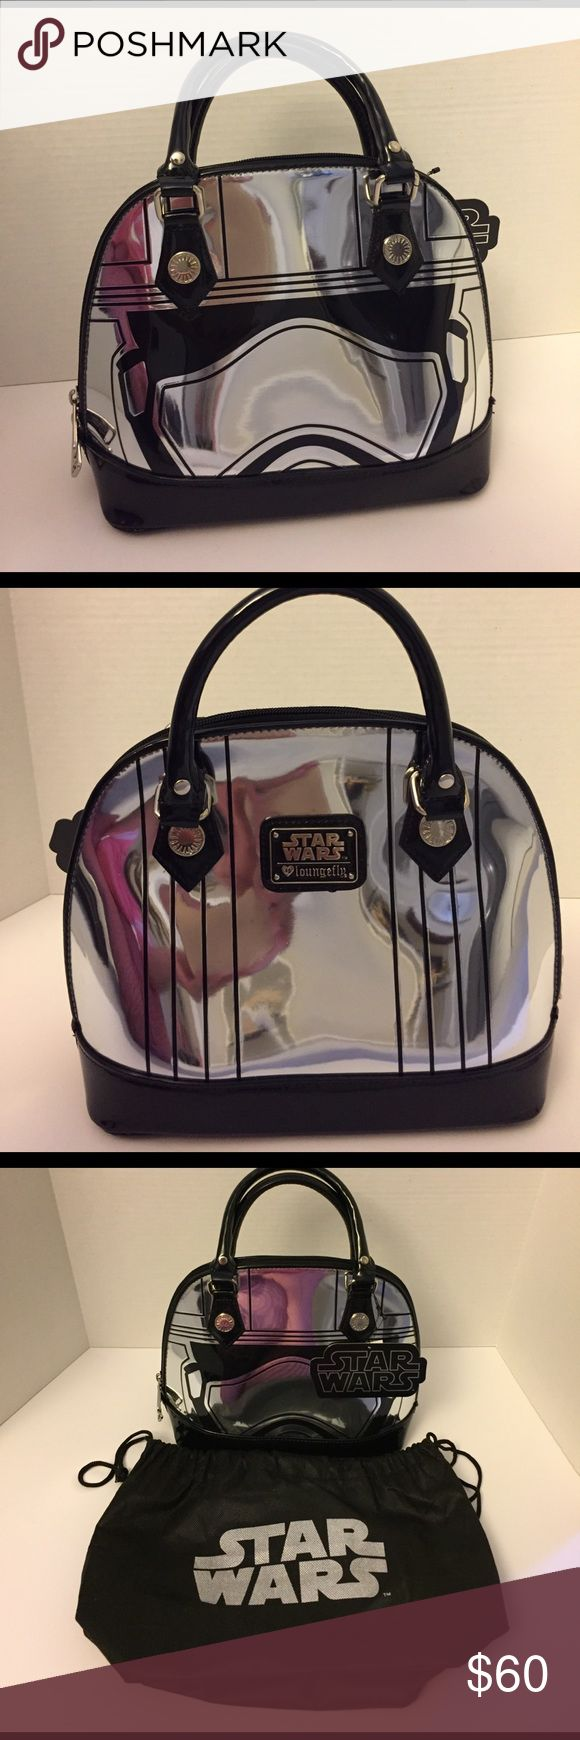 Loungefly Star Wars Captain Phasma Purse New with Tags.  Mirrored Loungefly Star Wars Captain Phasma Domed Purse.  Comes with dust Bag with Star Wars Logo on Front.  Comes from a smoke free/pet free home. Loungefly Bags Satchels